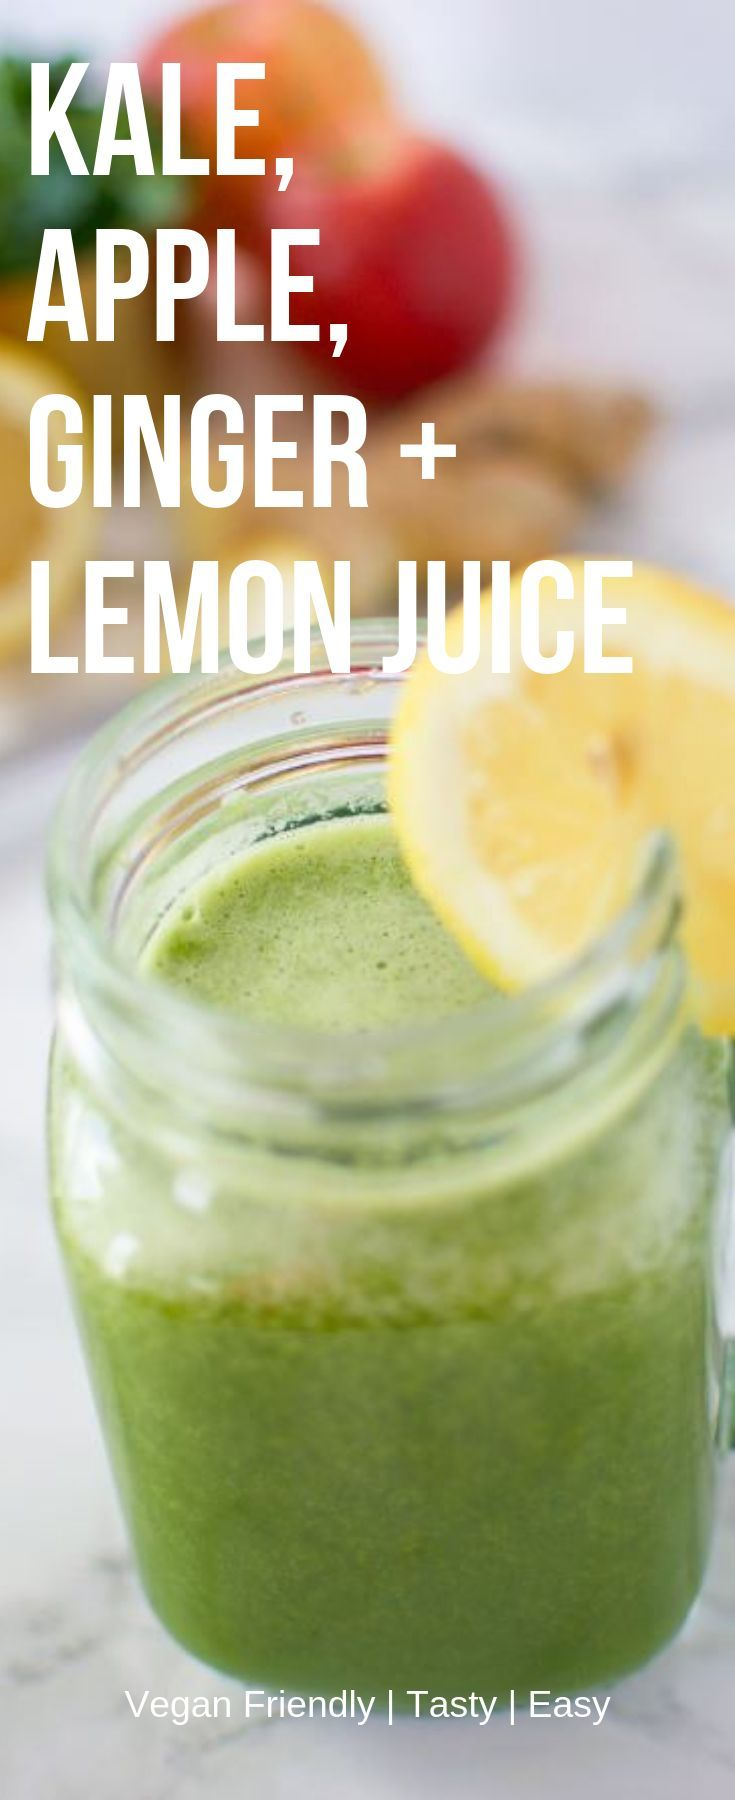 Sweet Kale, Apple, Ginger+Lemon Juice | I Can You Can Vegan Kale Juice Looking for a new juicing co